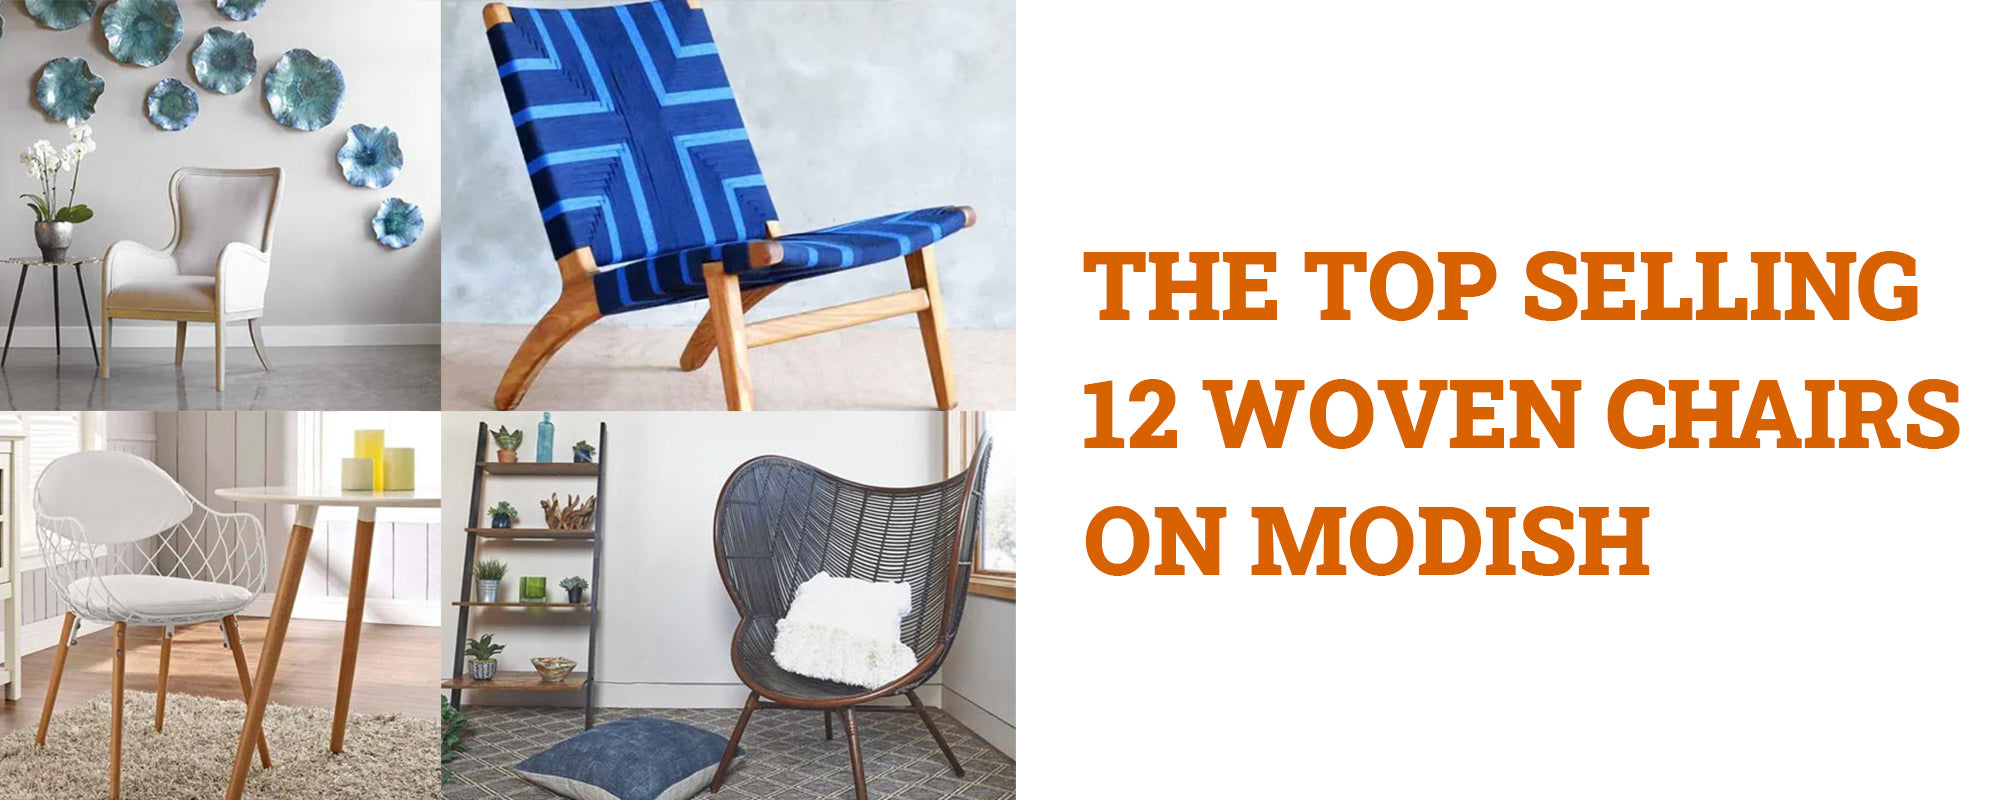 The Top Selling 12 Woven Chairs On Modish